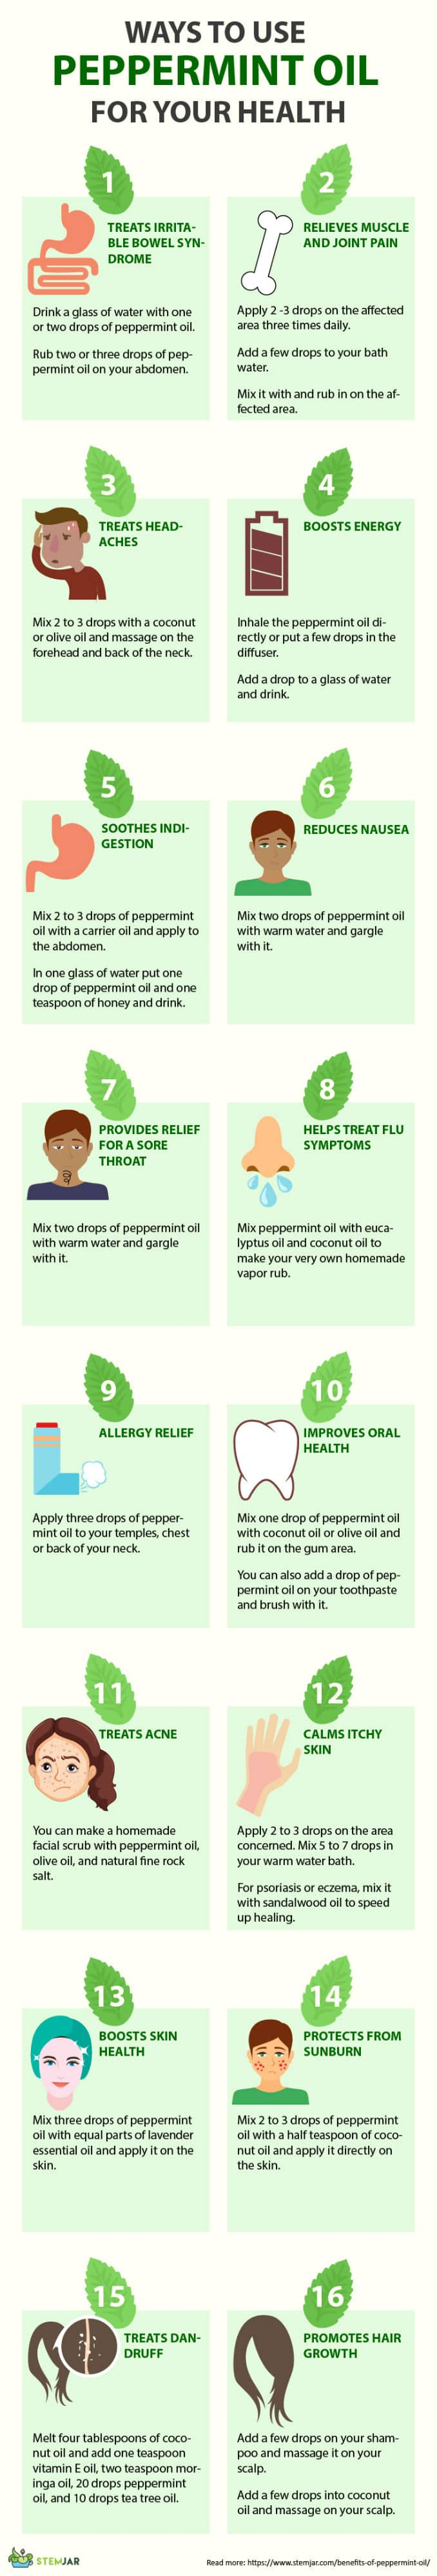 Benefits of Peppermint Oil infographic